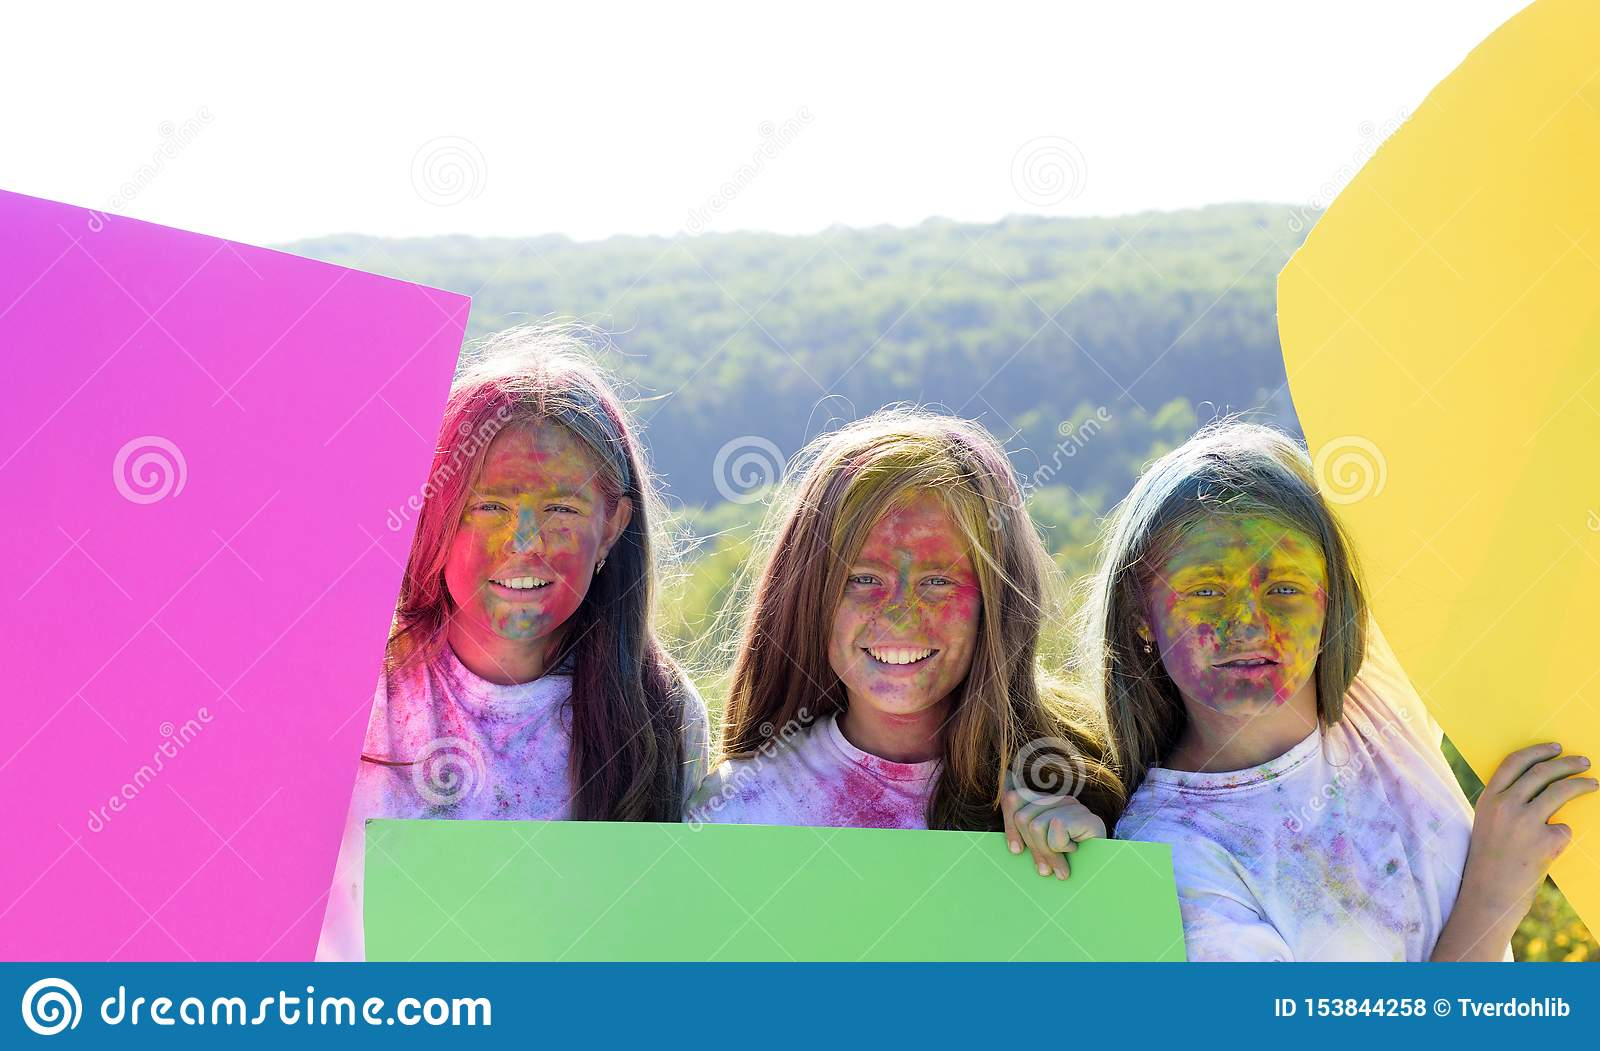 Colorful neon paint makeup. positive and cheerful. children with creative body art. Happy youth party. Optimist. Spring